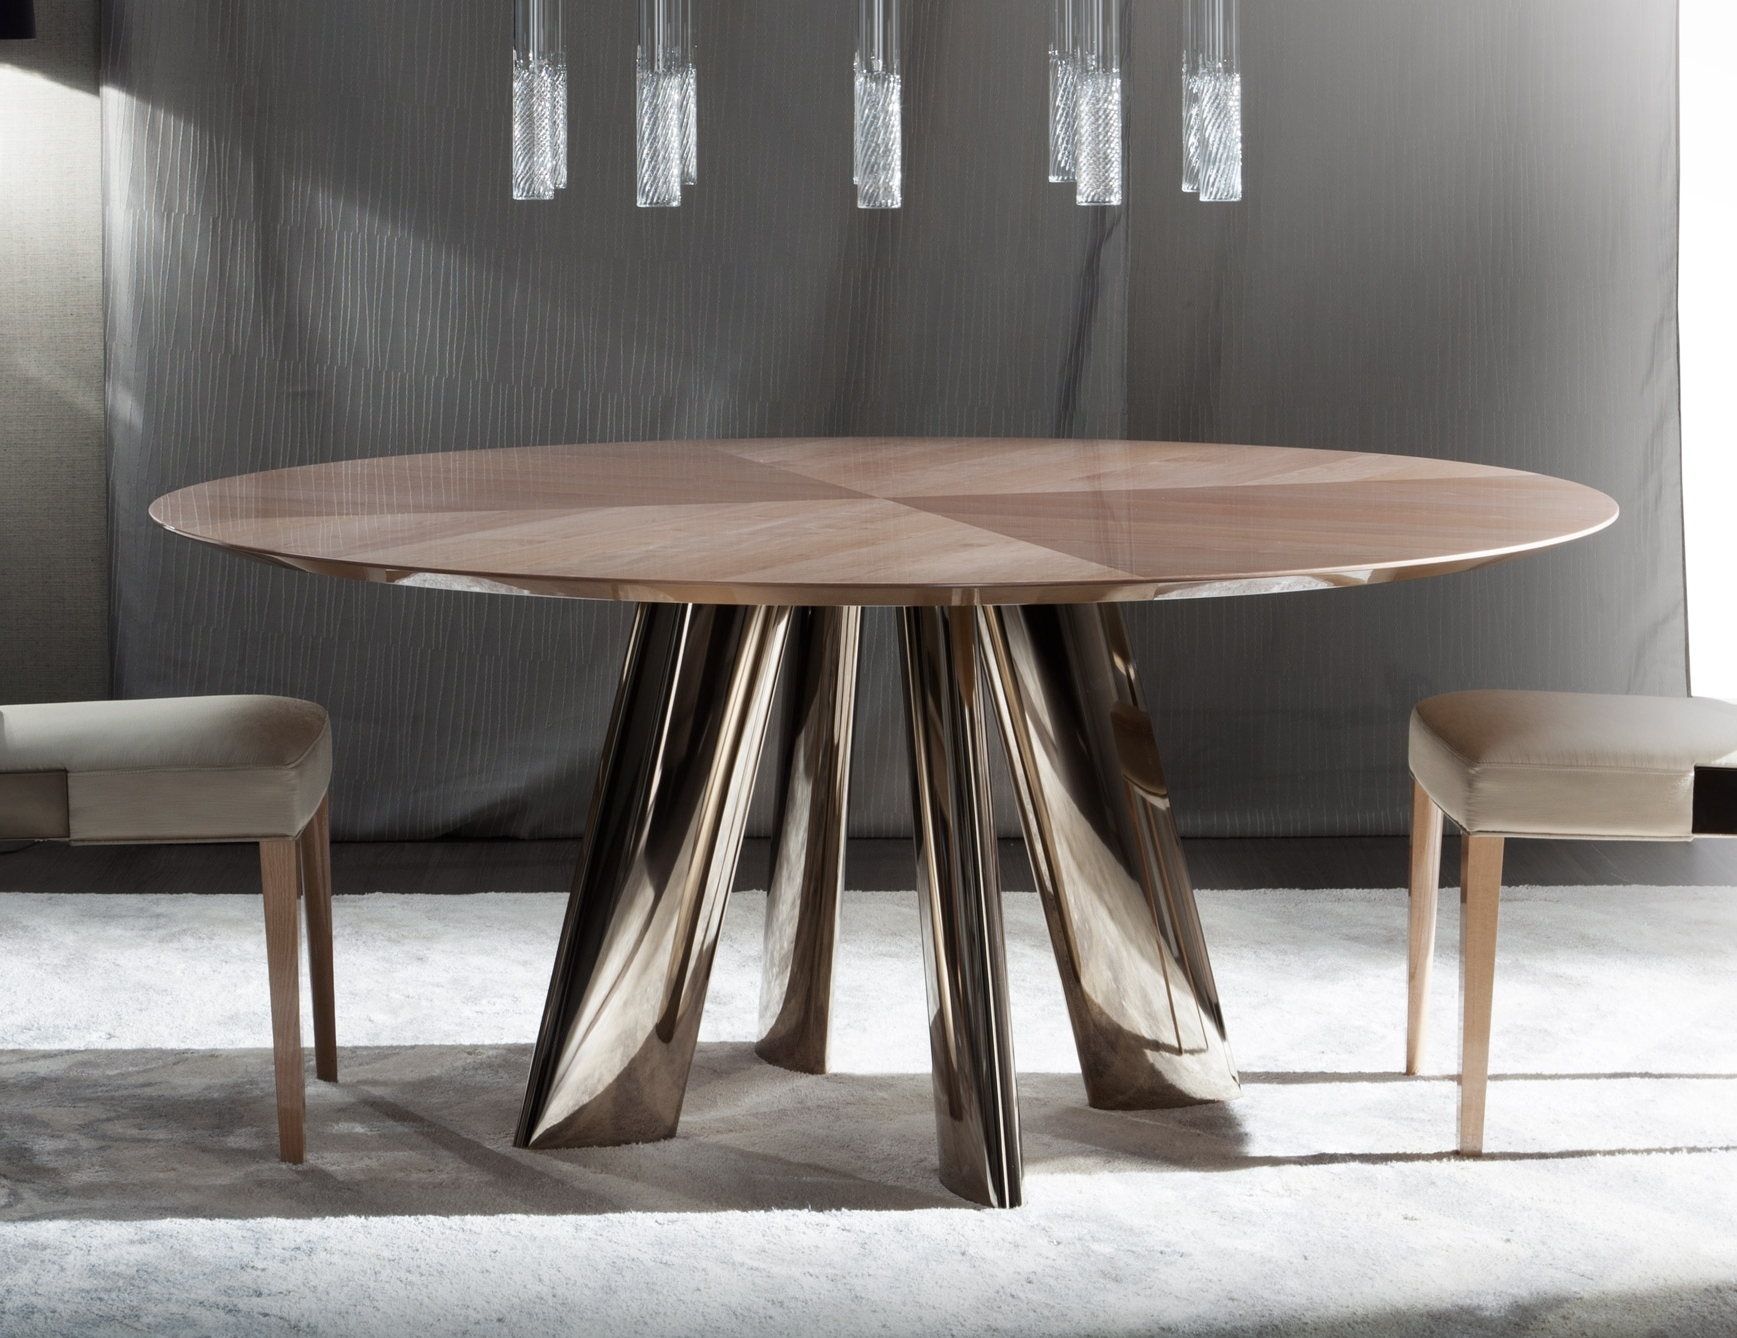 Famous Nella Vetrina Costantini Dress 9285Tr Modern Italian Dining Table Intended For Italian Dining Tables (View 7 of 25)